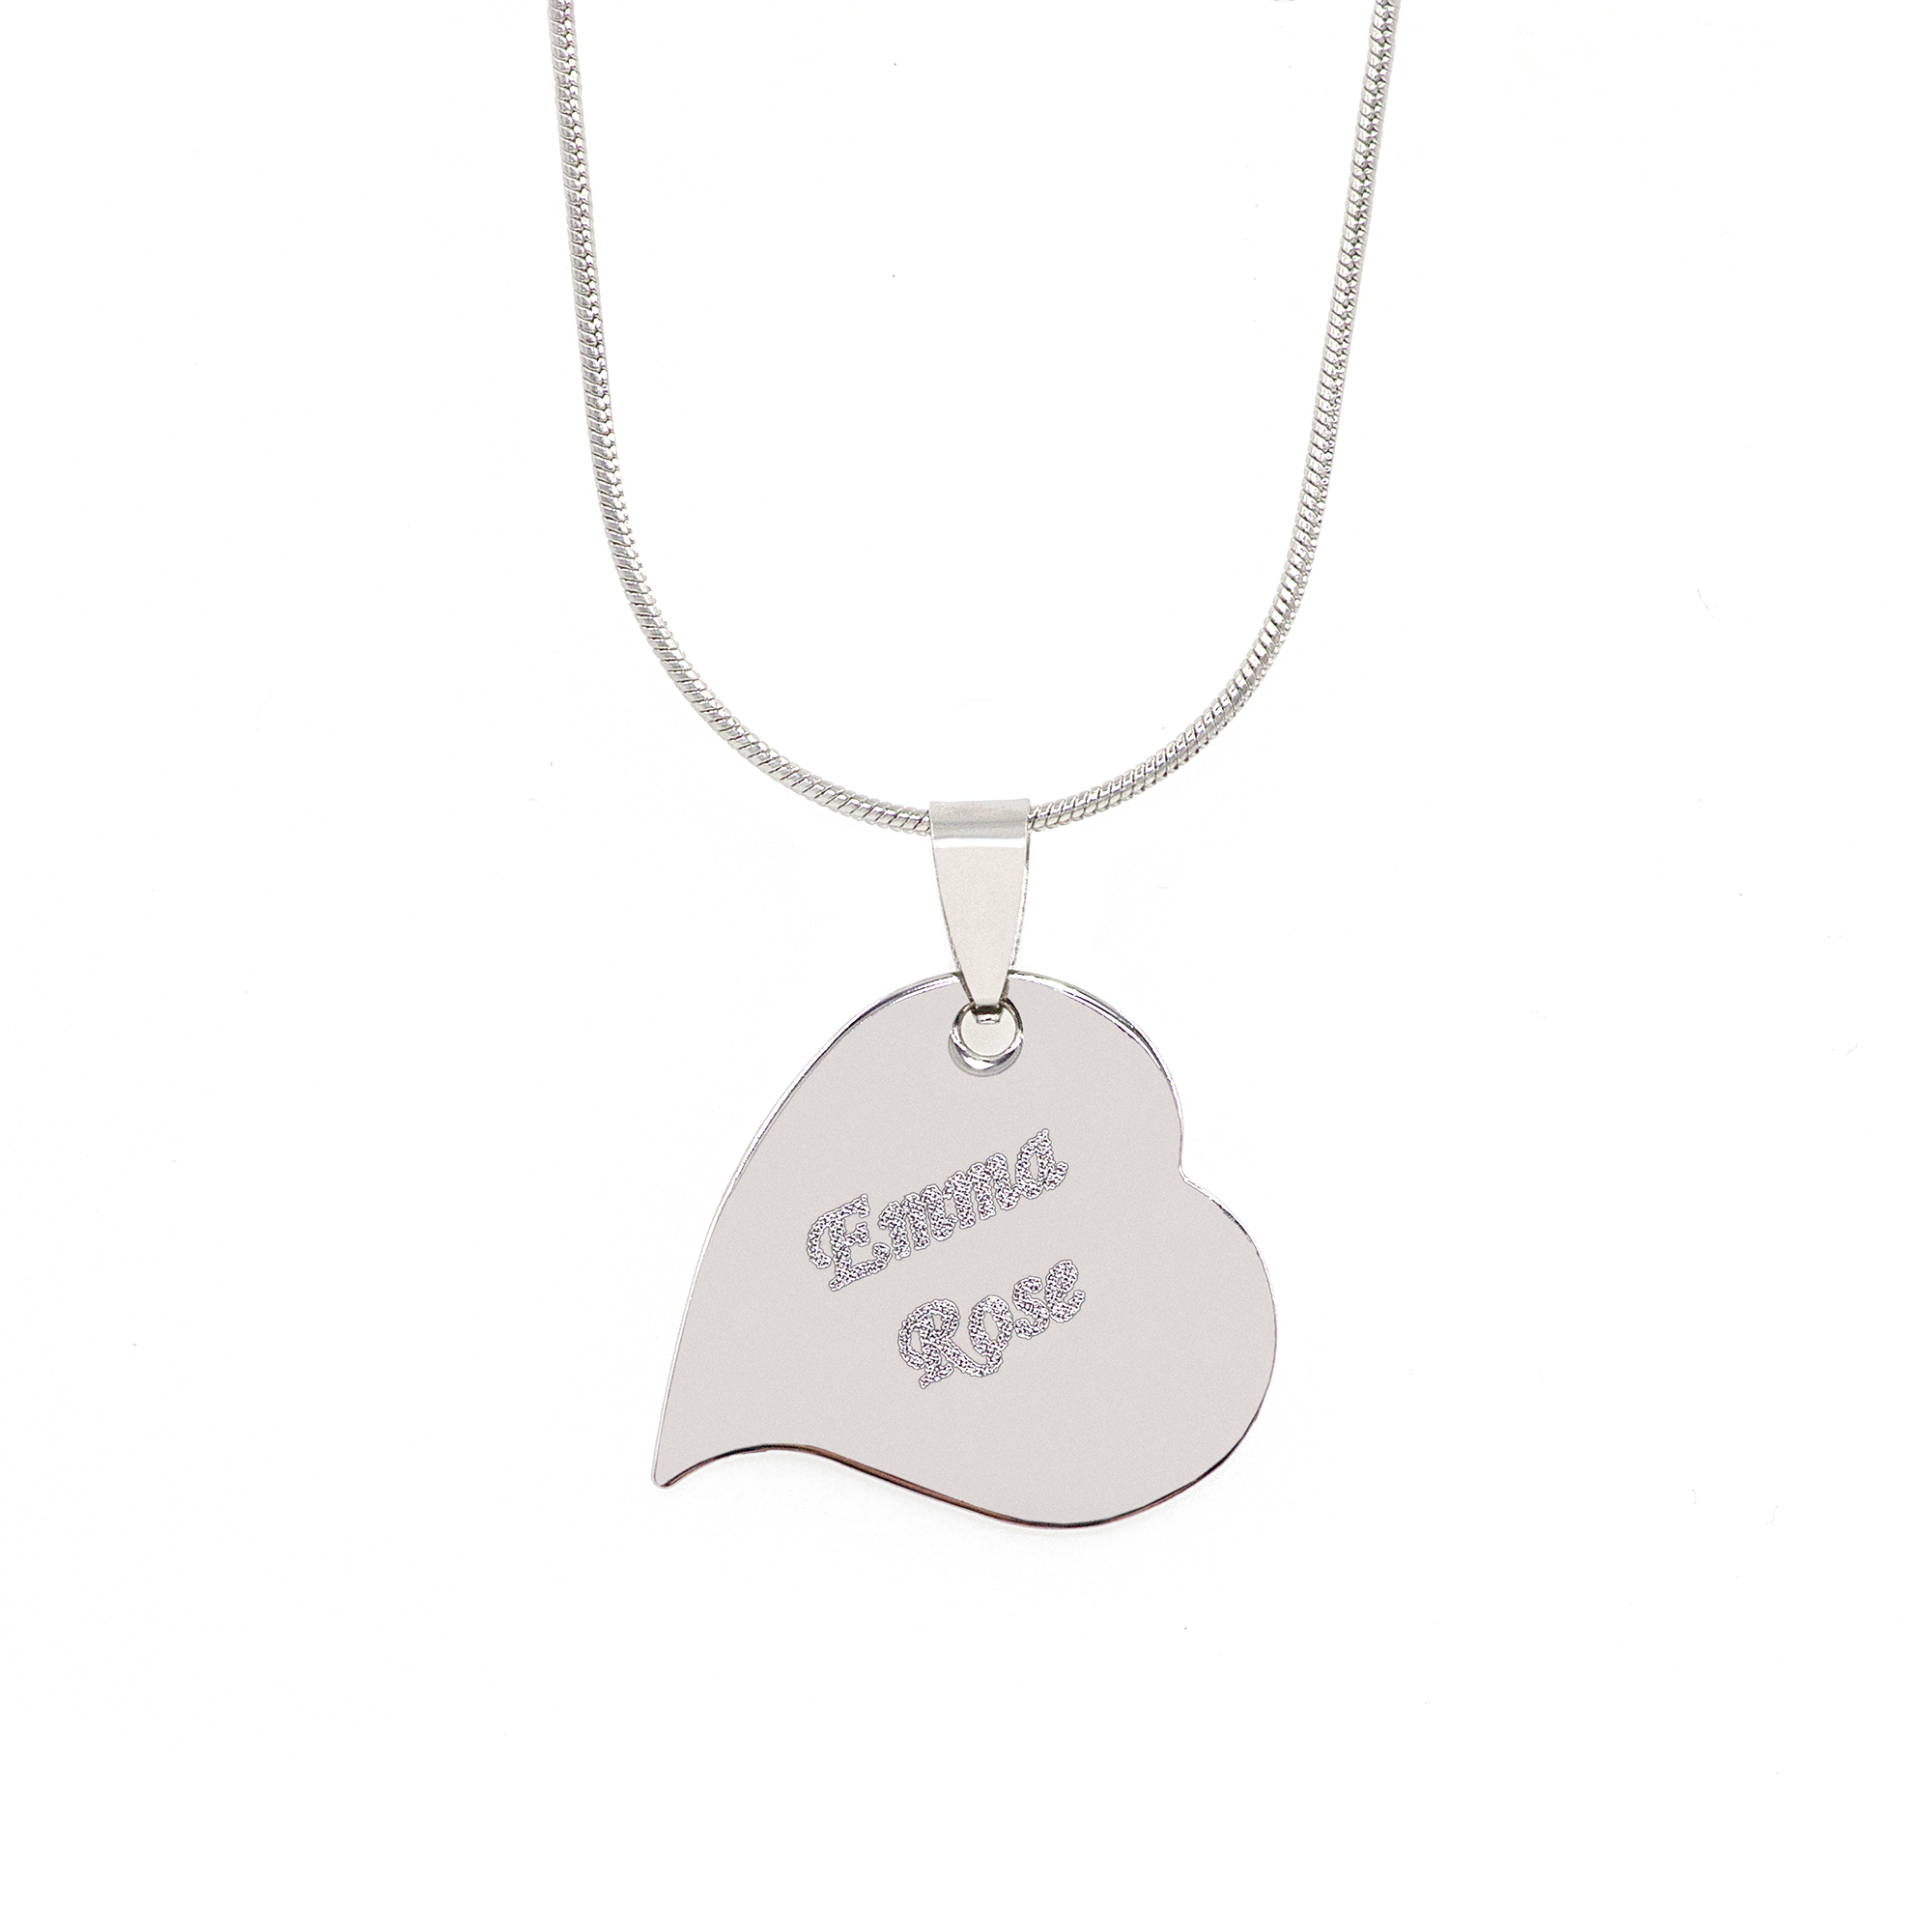 Stainless Steel Heartbeat Charm Necklace 0005